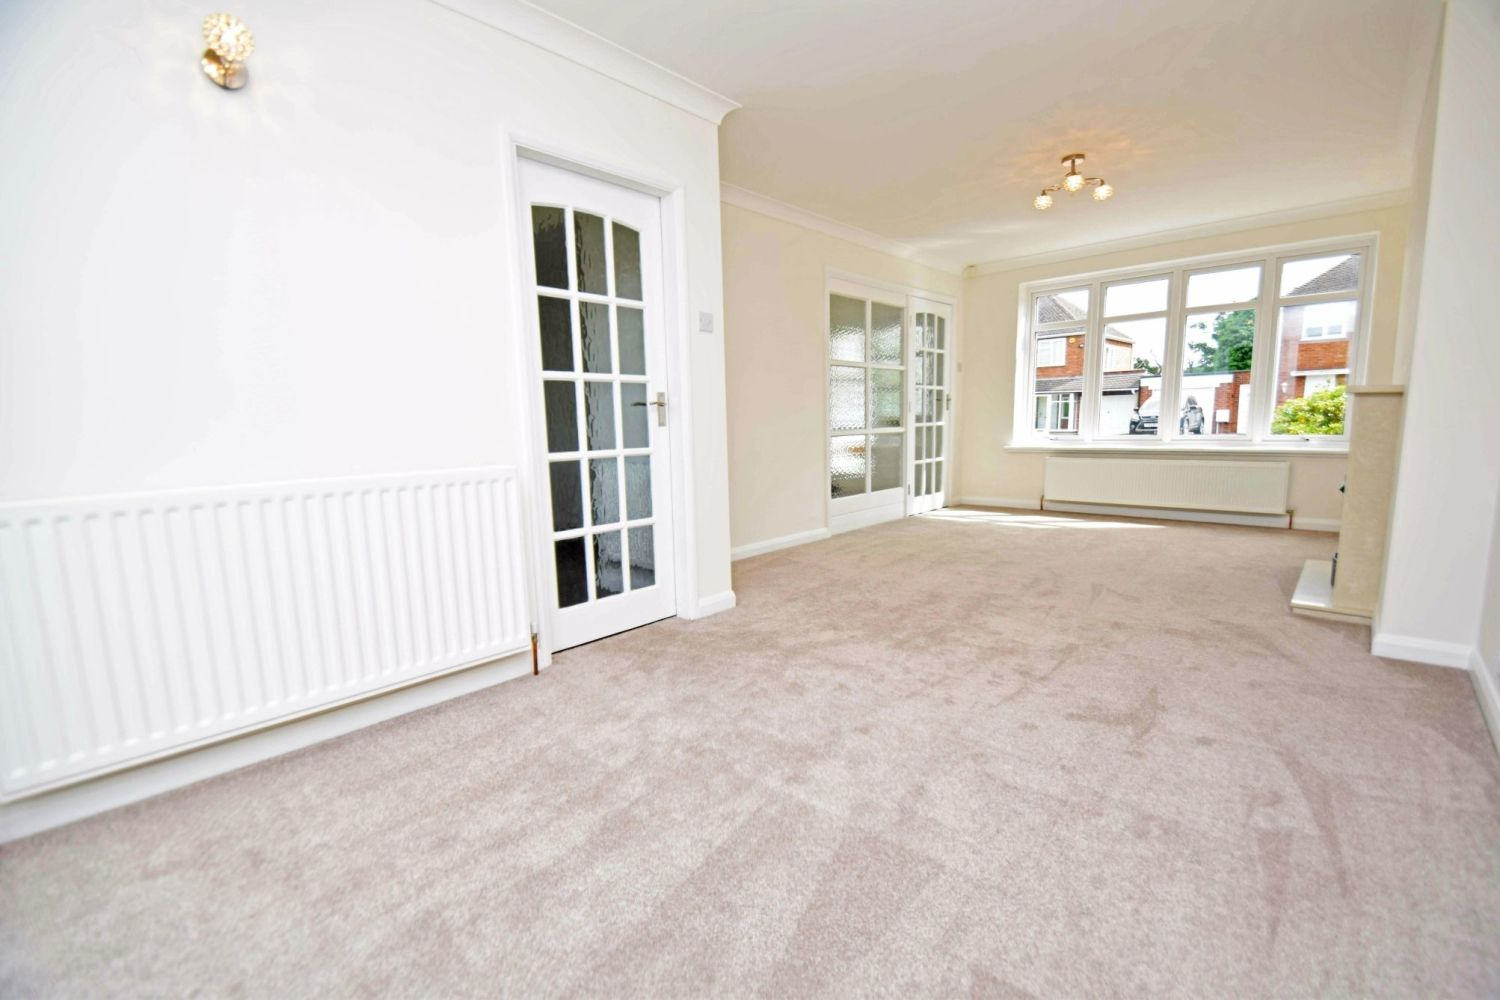 3 bed semi-detached for sale in Beachcroft Road, Wall Heath  - Property Image 3